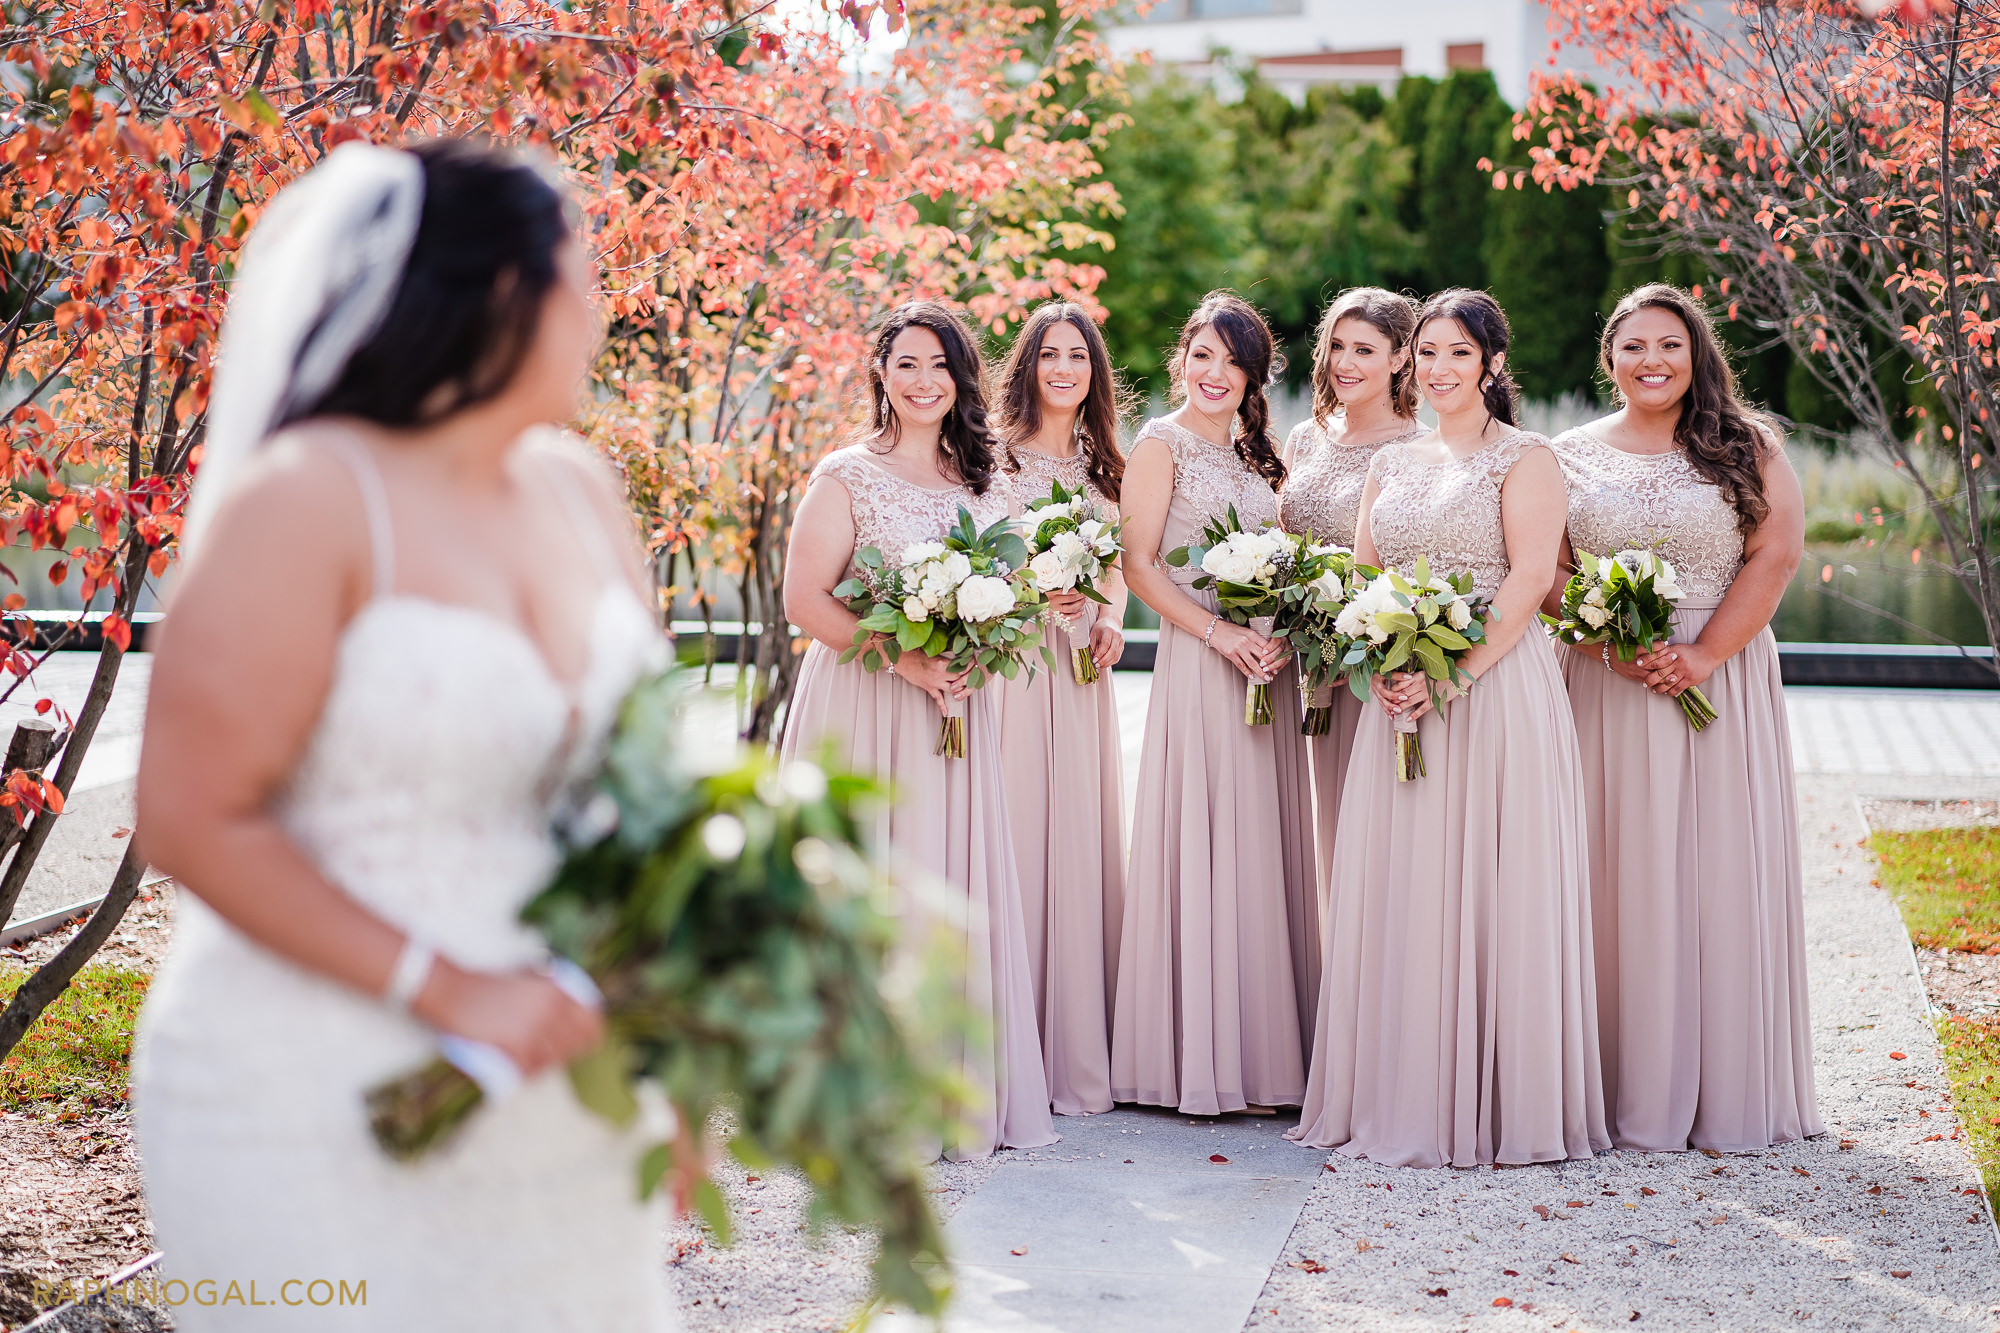 Bridesmaid smiling at Bride and she turn to them